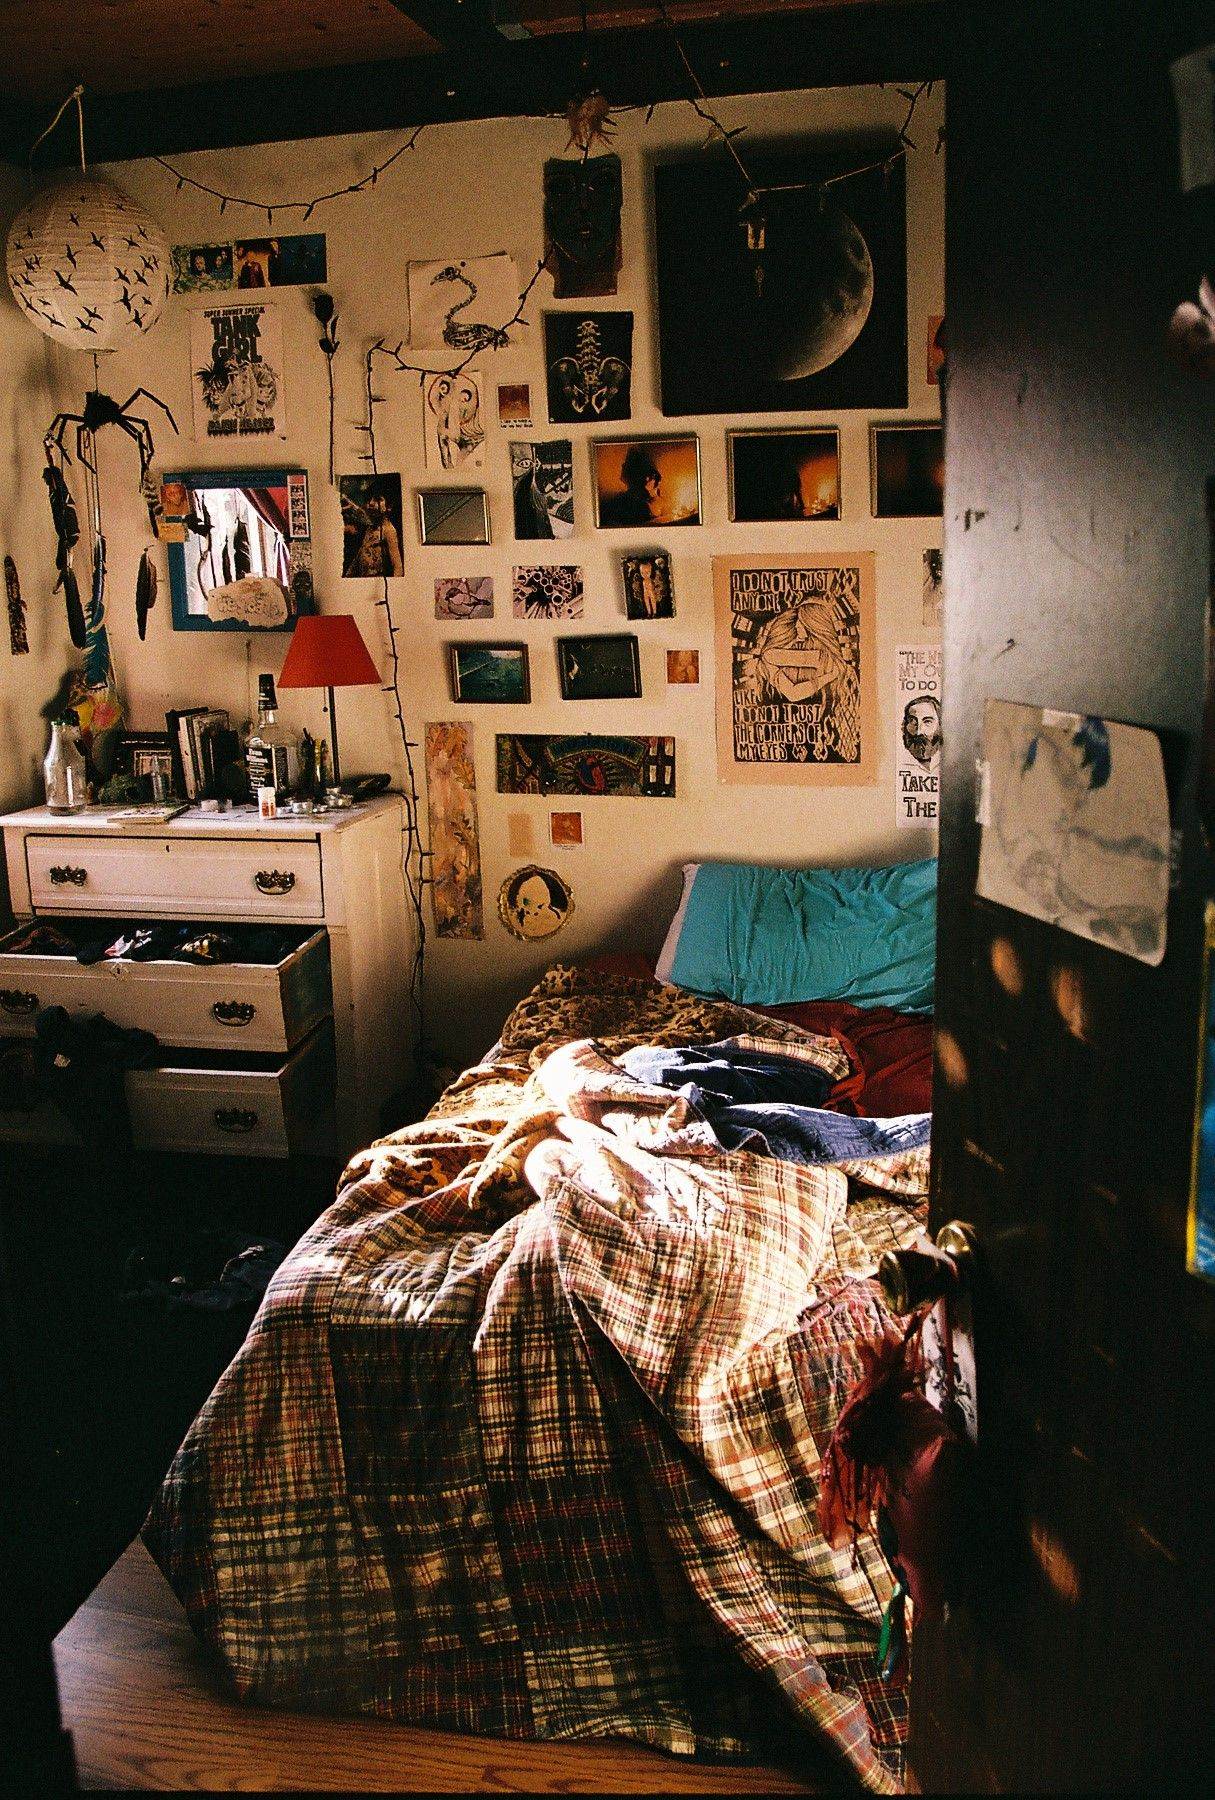 Hippie bohemian bedroom tumblr pictures and posters are organised well placed precisely but still